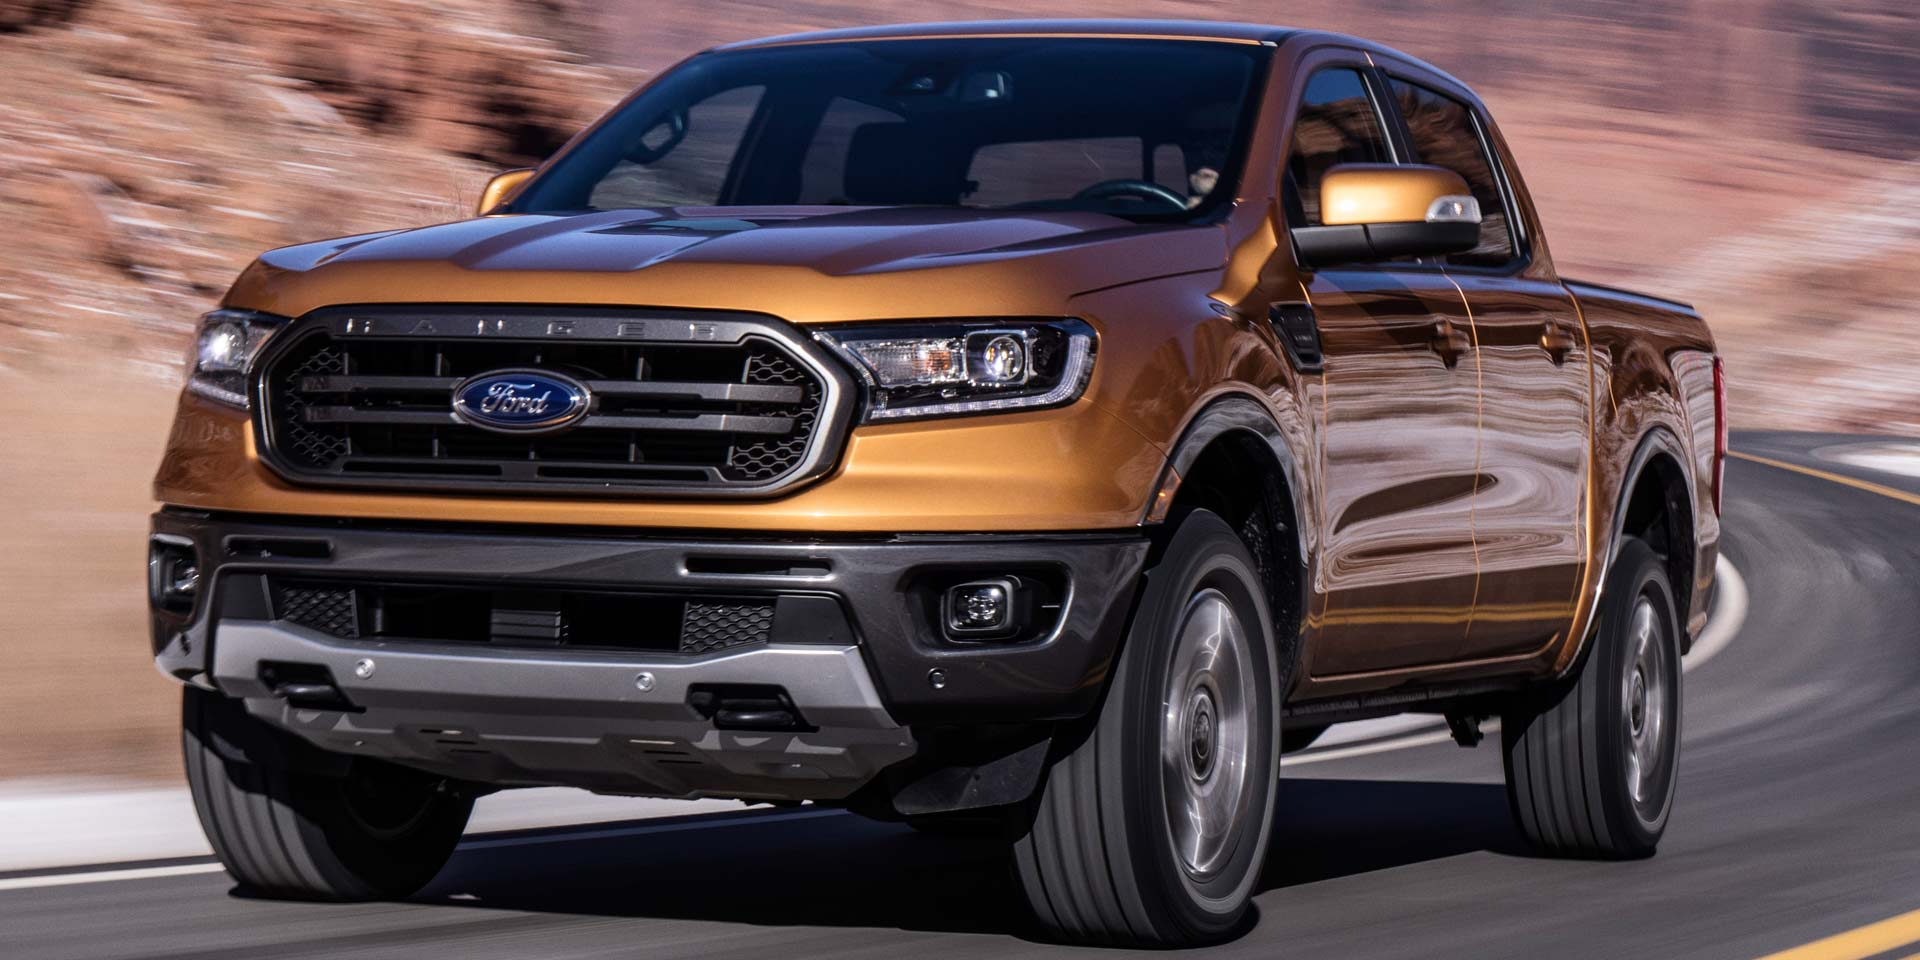 2019 Ford Ranger Vehicles On Display Chicago Auto Show